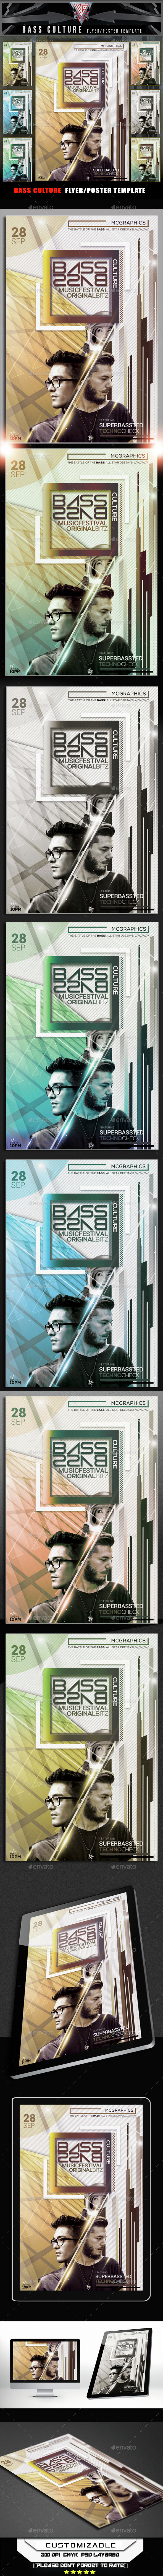 Bass Culture Flyer Template - Clubs & Parties Events